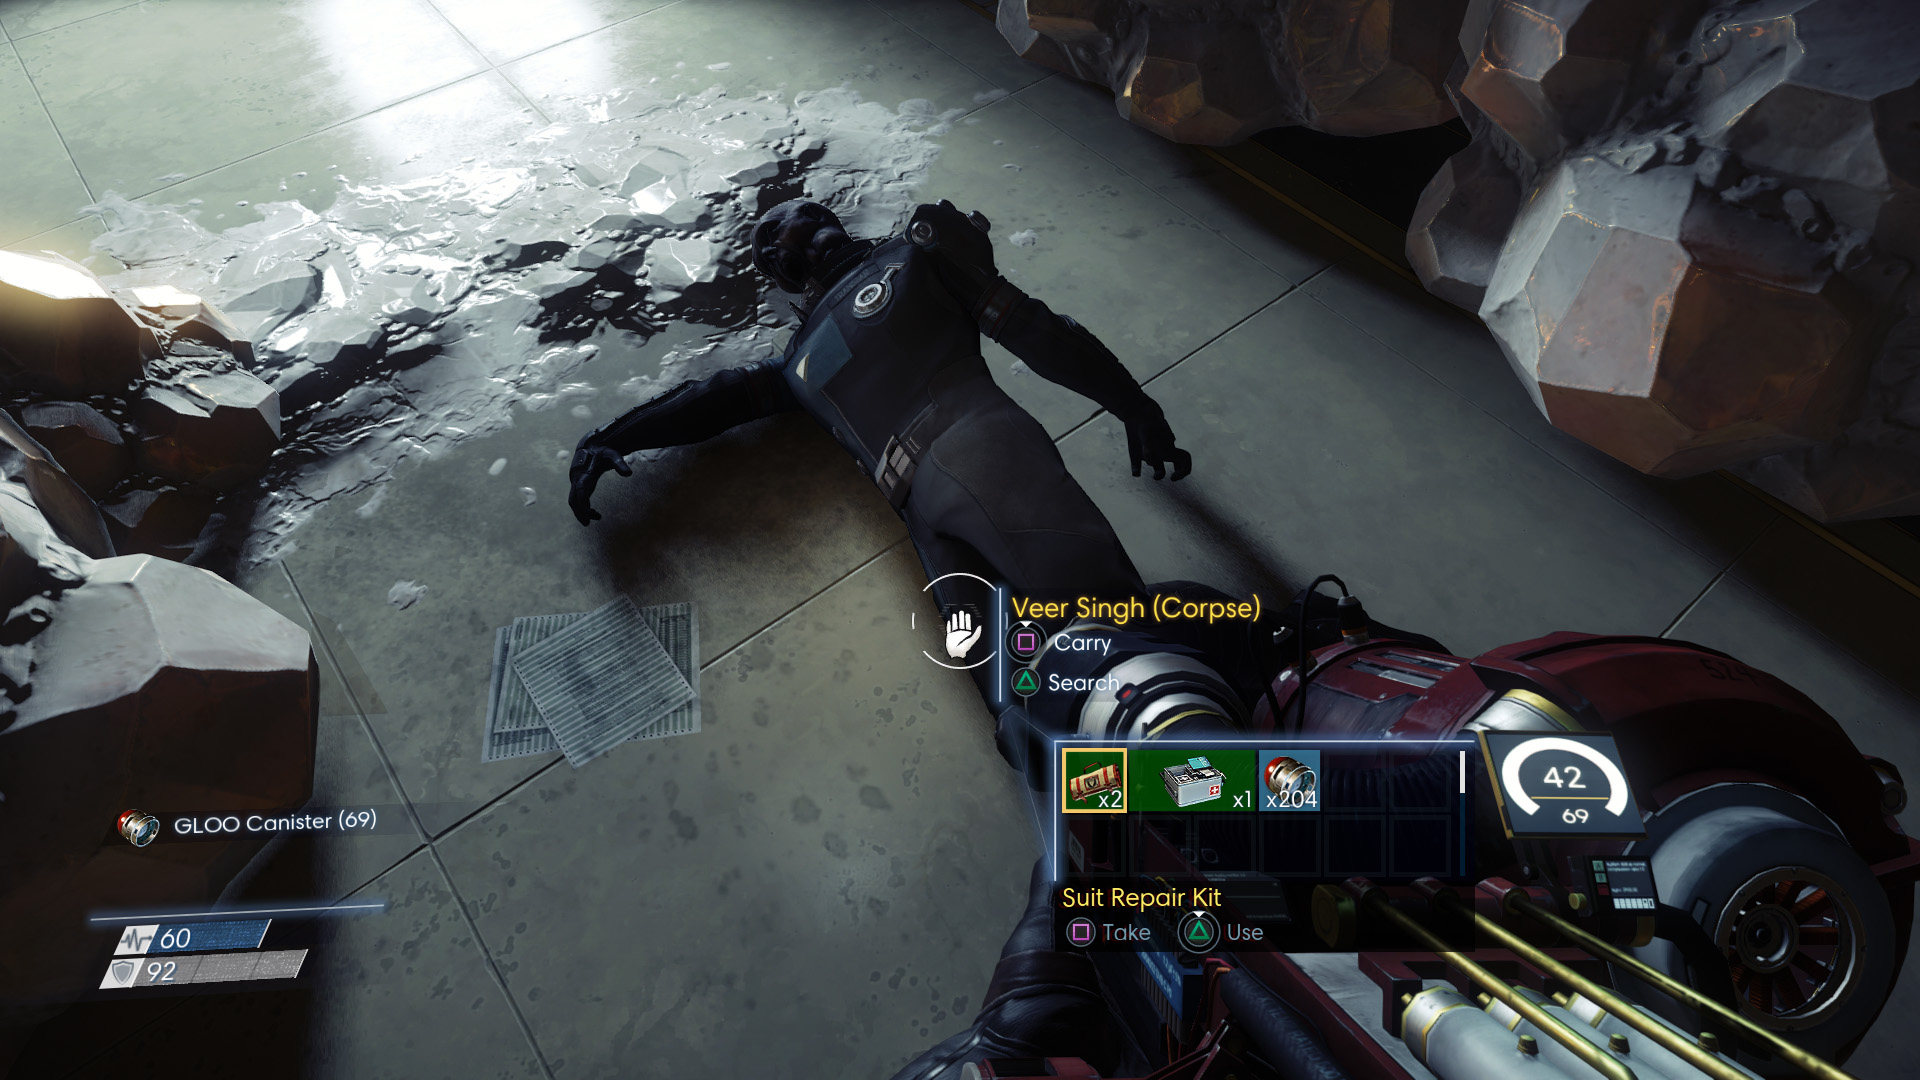 Prey looting corpse